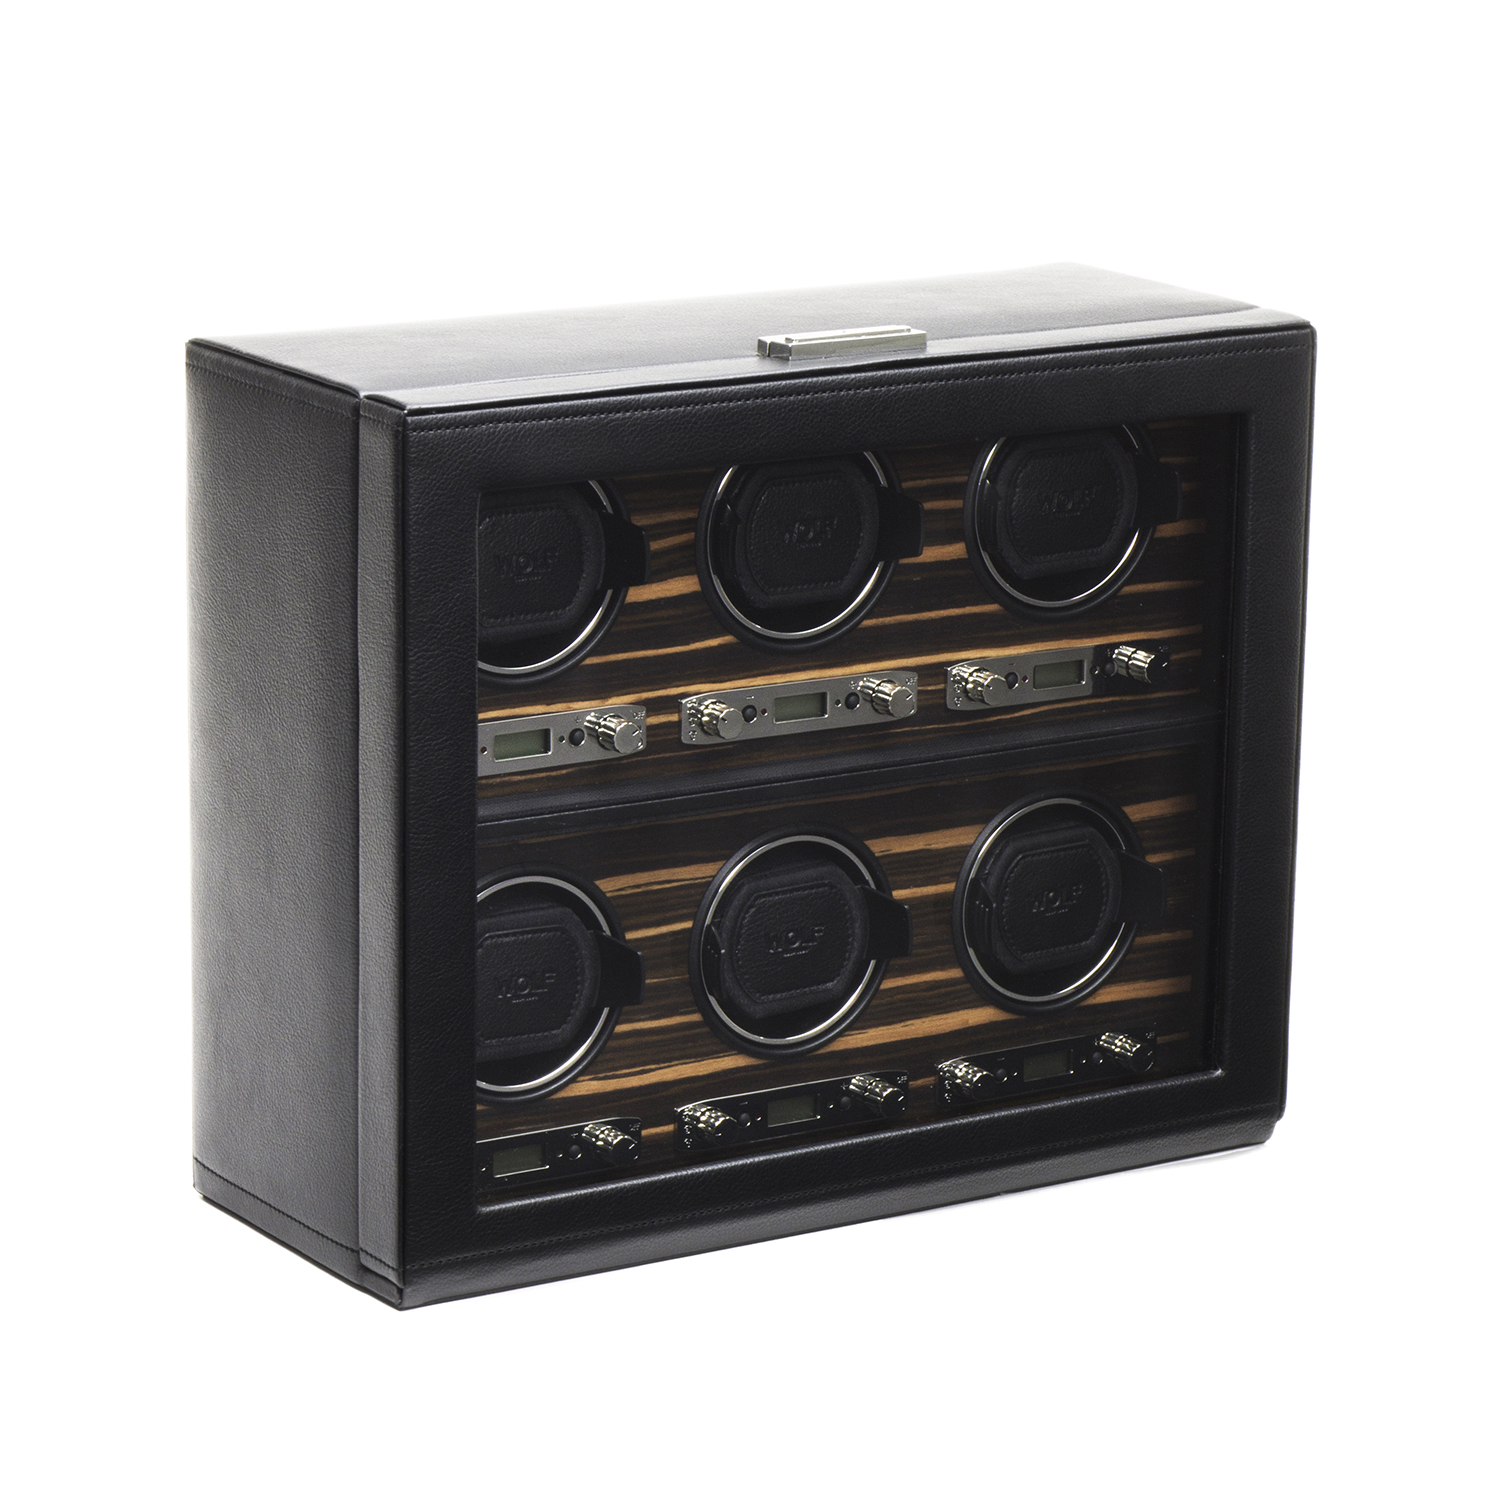 Wolf Roadster Men's 6 Watch Winder in Faux Leather w/ Wood Veneer, Glass & Key Lock